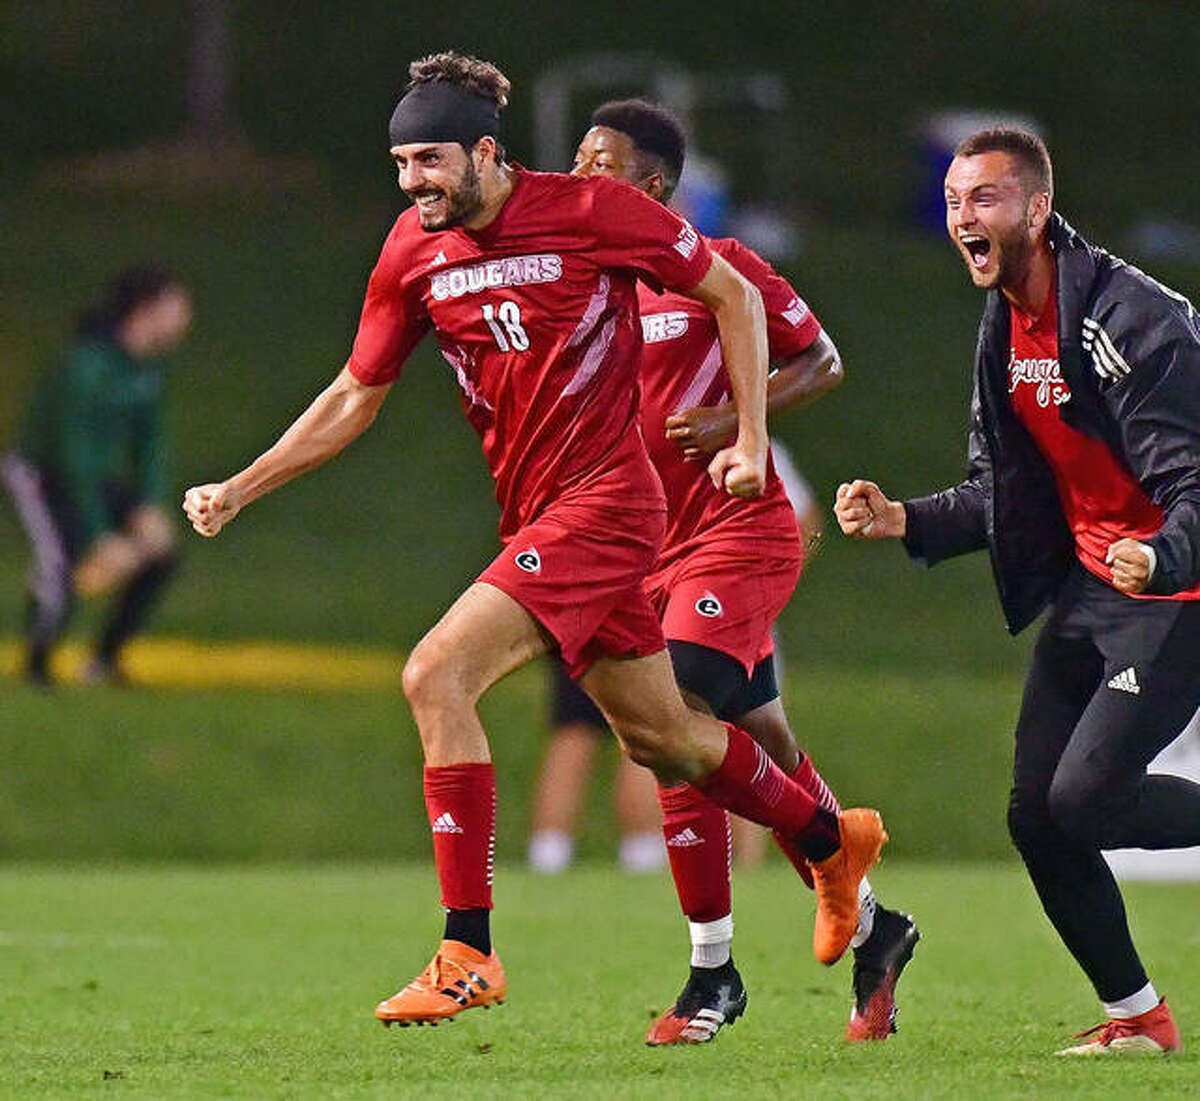 Pau Palacin of SIUE and teammates celebrate his second-half goal that pulled the cougars into a 1-1 tie with Saint Louis University in the 30th Bronze Boot soccer game Tuesday night at Hermann Stadium